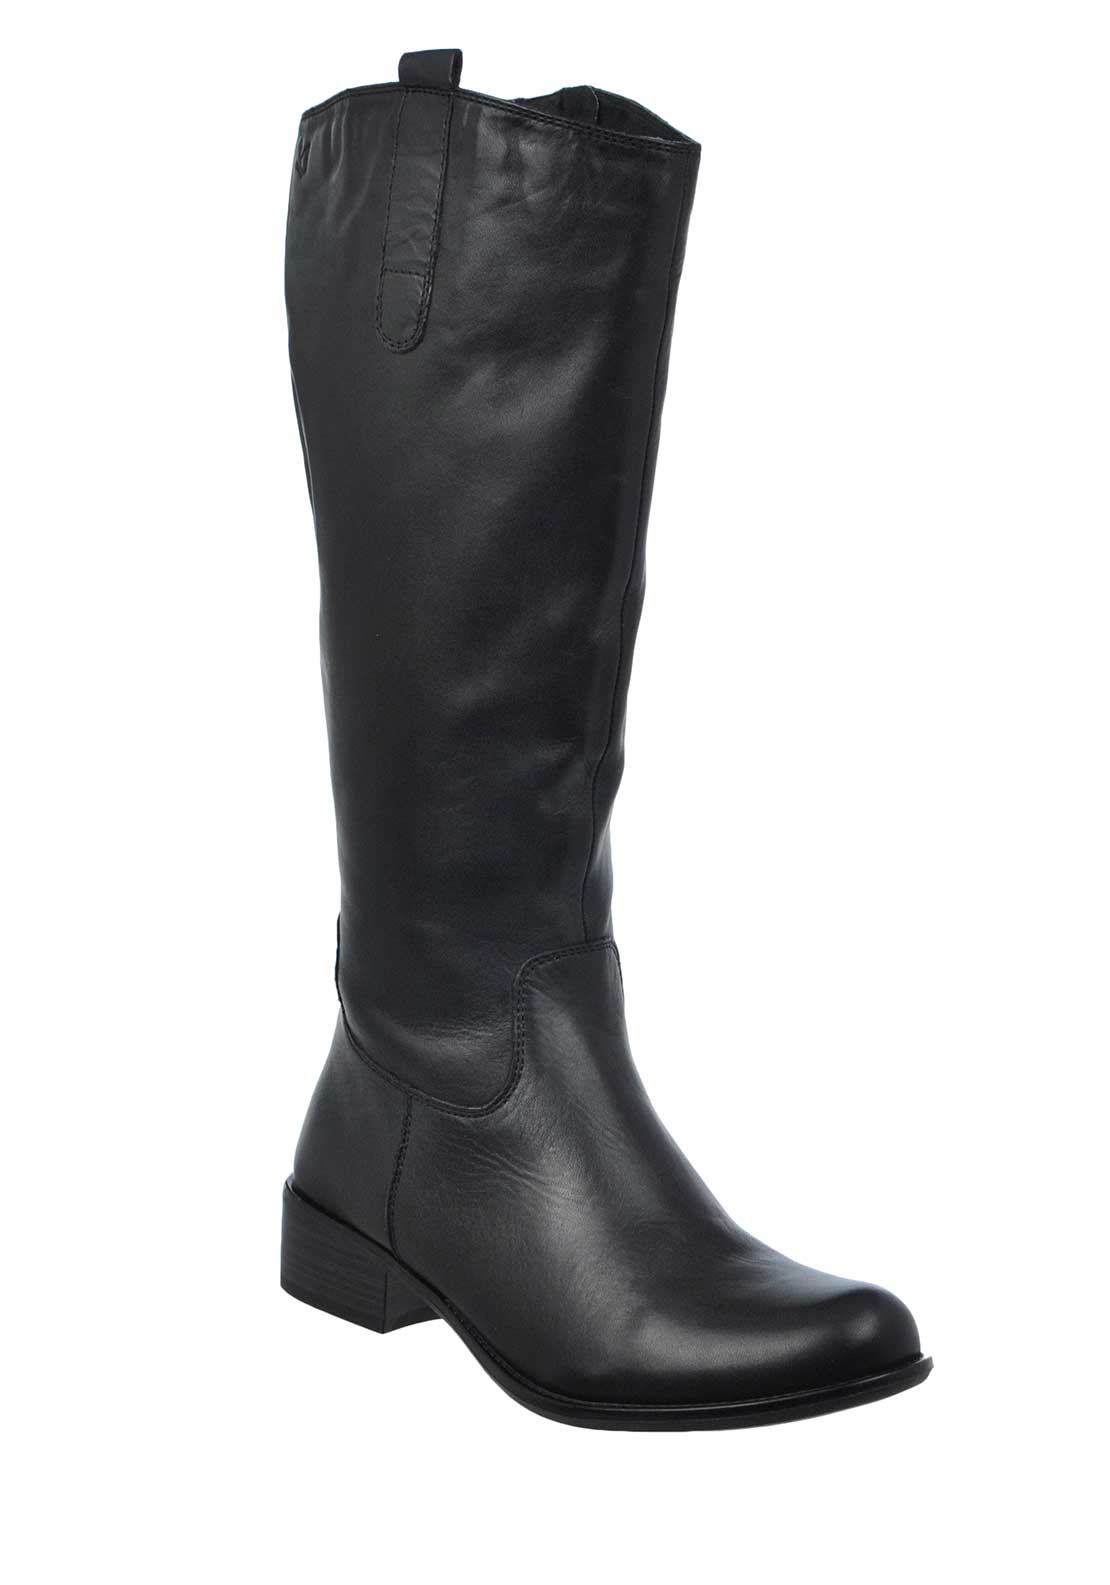 Caprice Leather Long XL Rider Boots, Black